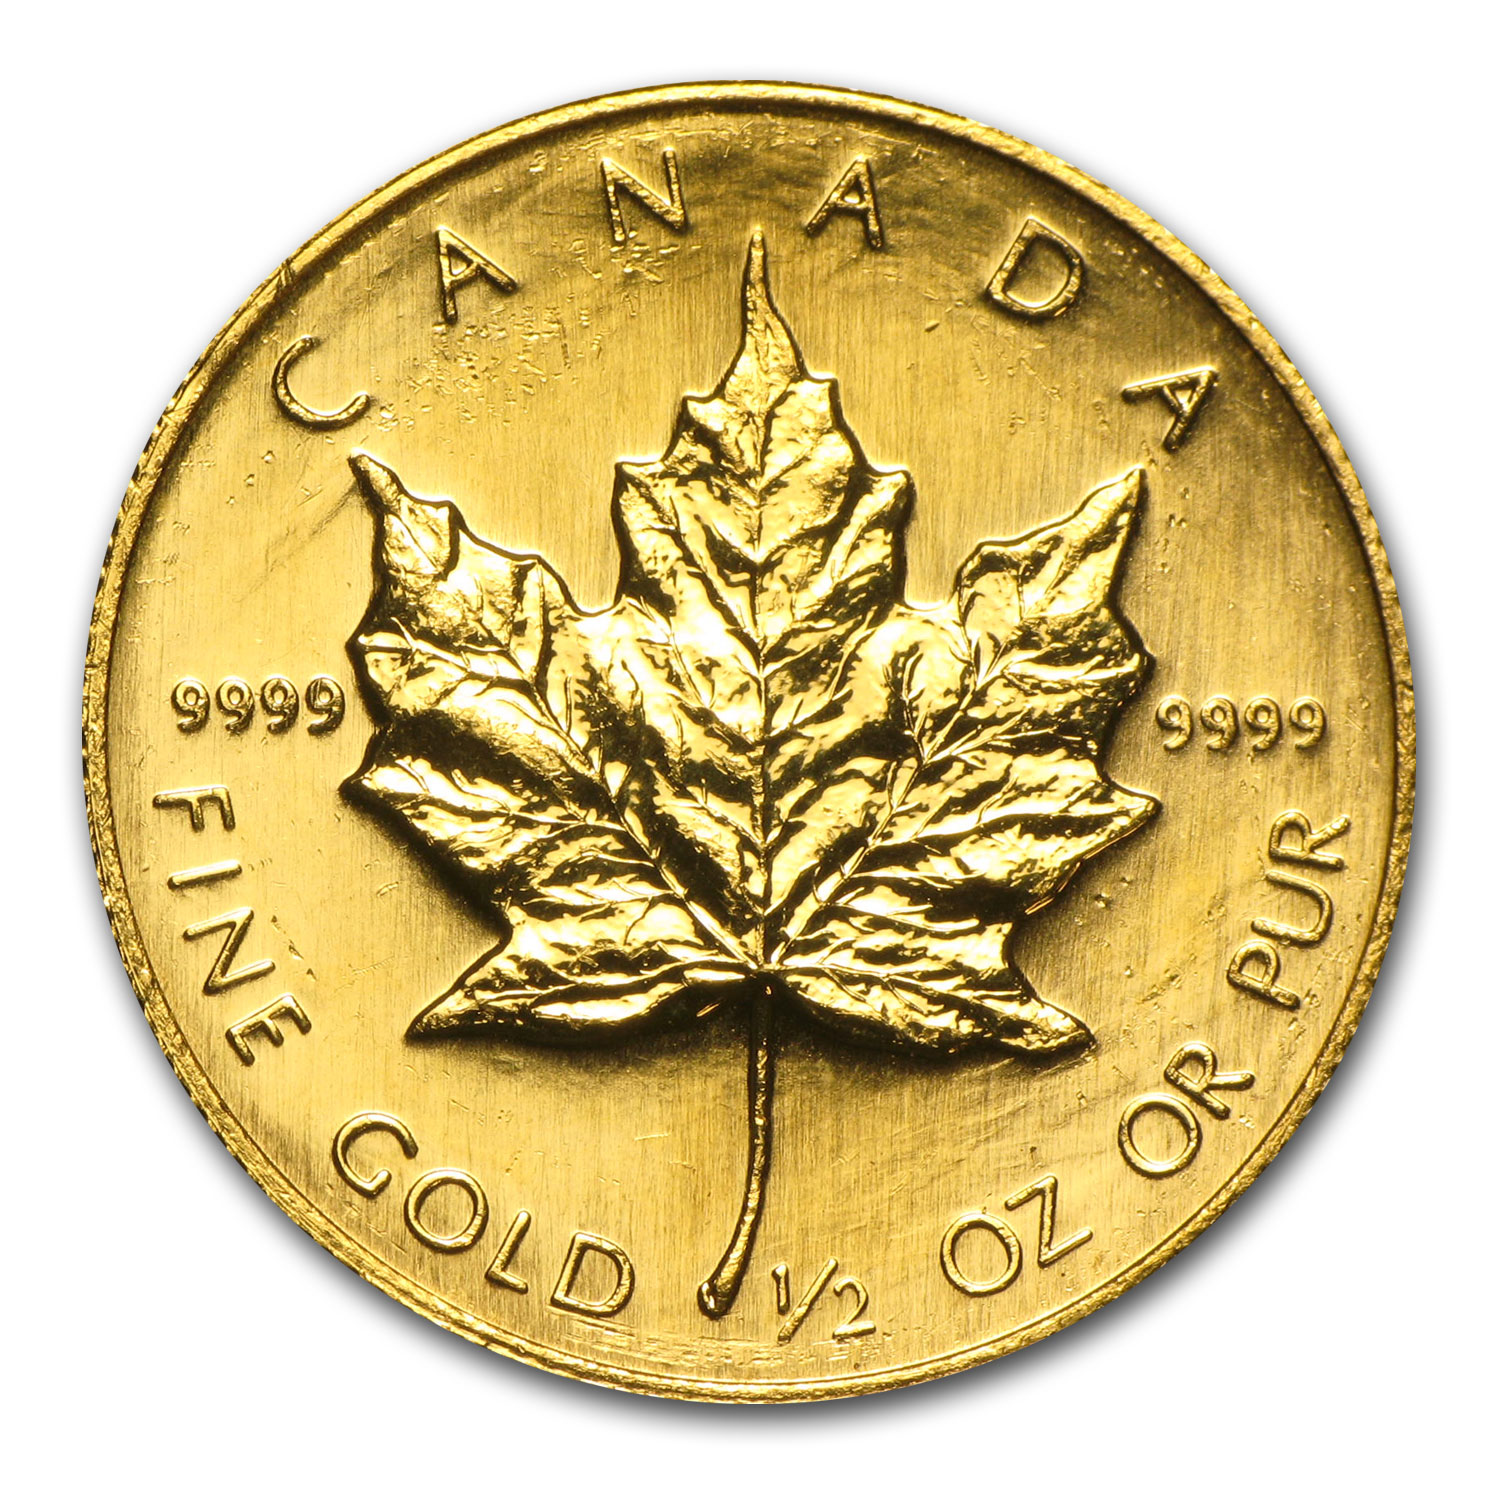 1/2 oz Gold Canadian Maple Leaf (Random Year, lightly scratched)